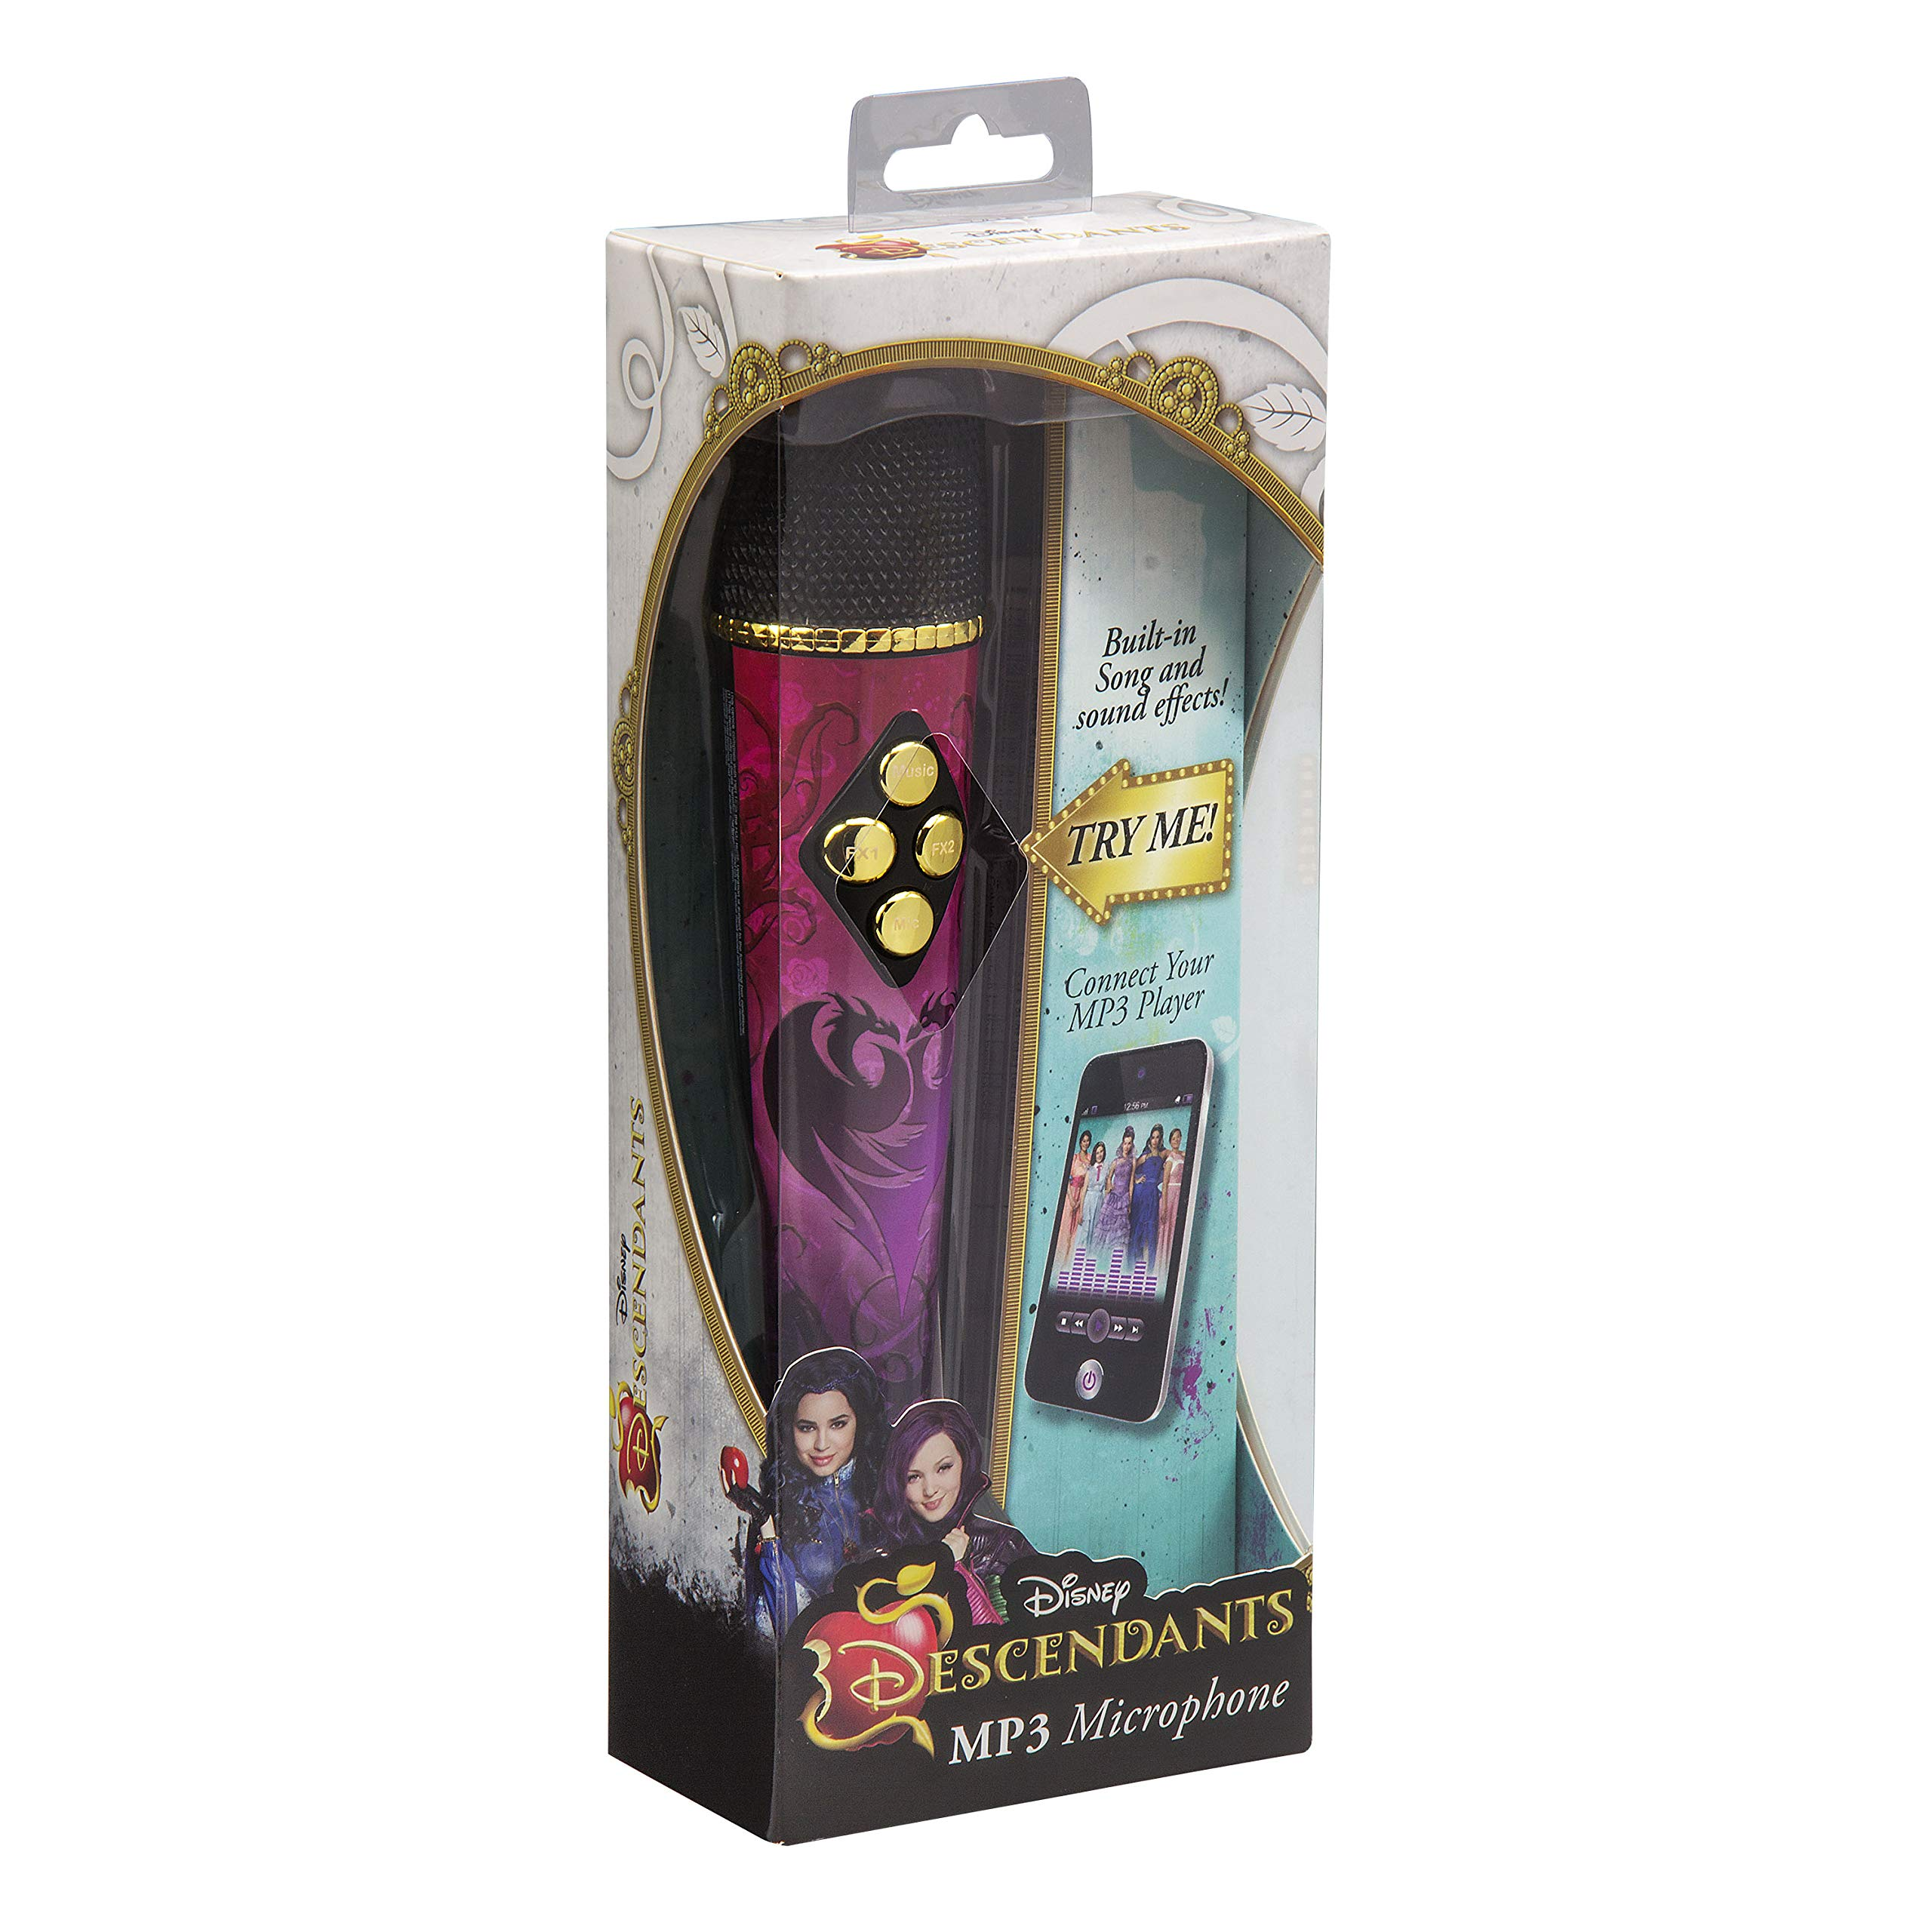 Descendants Voice Changing Microphone Music Set by Disney (Image #8)